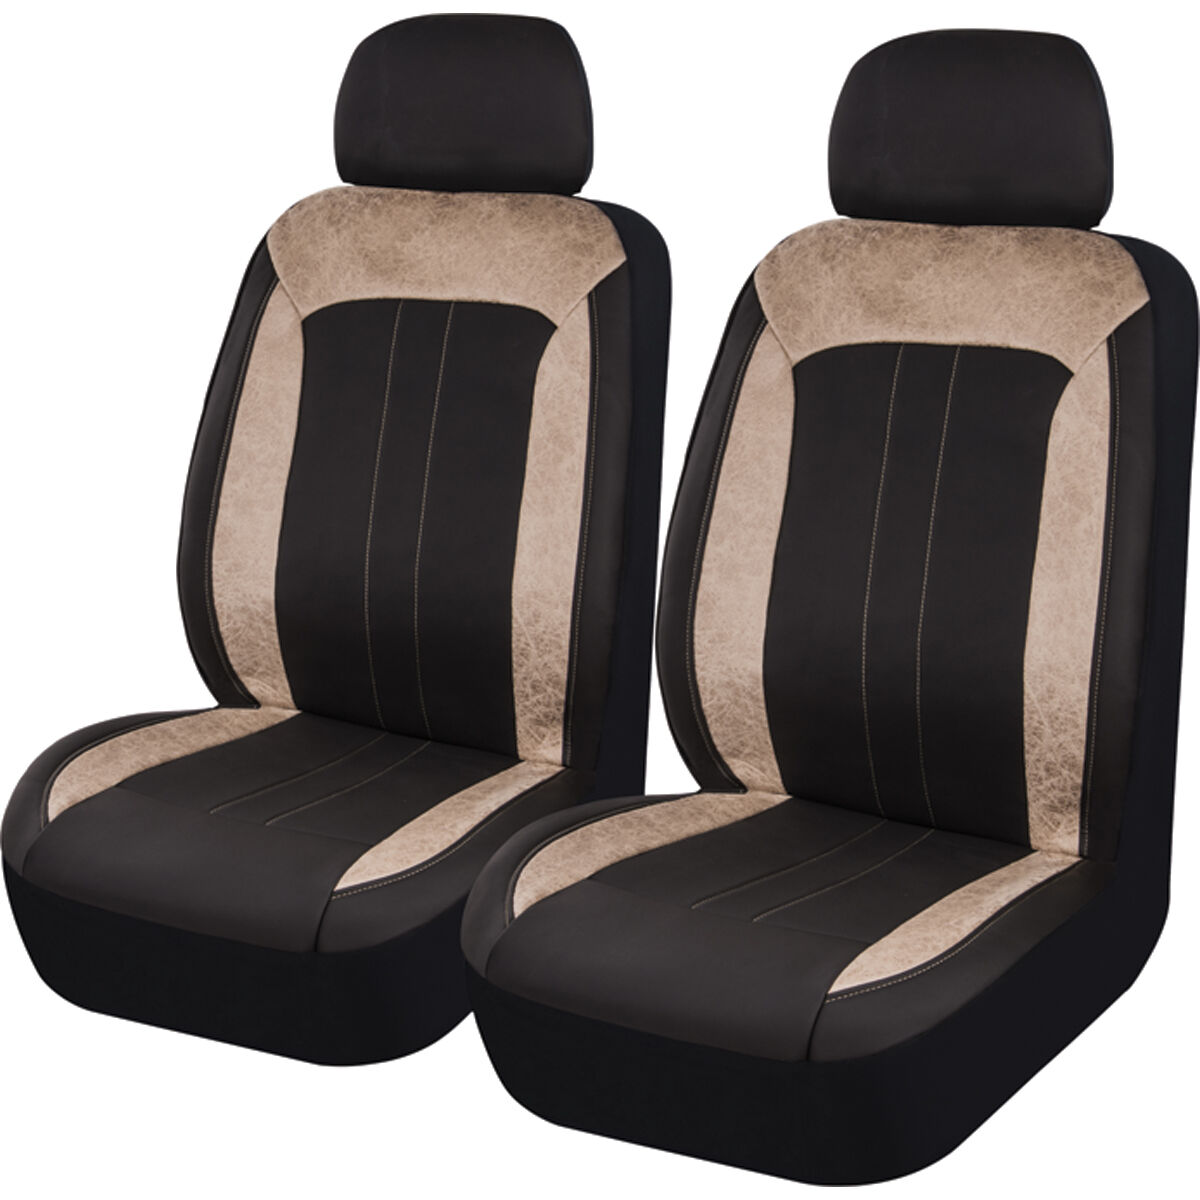 Black Leather Look Car Front Seat Covers Pairs Air Bag Compatible